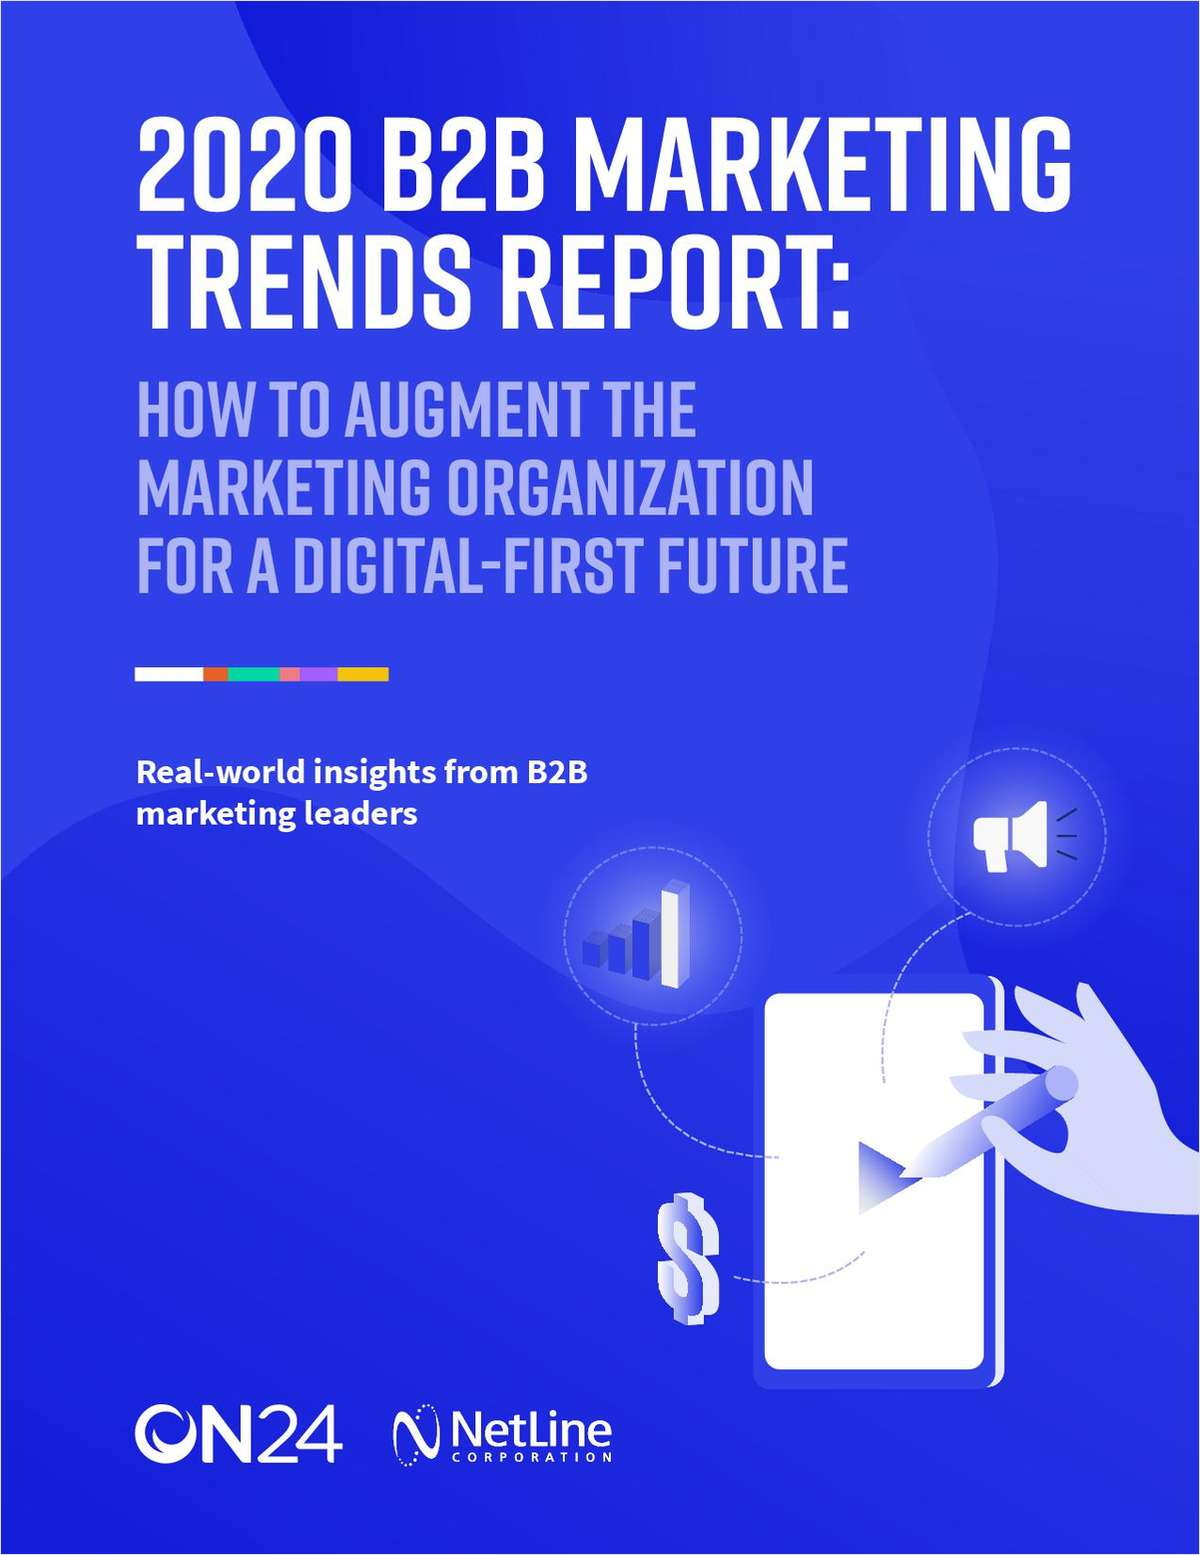 2020 B2B Marketing Trends Report: How to Augment the Marketing Organization for a Digital-First Future